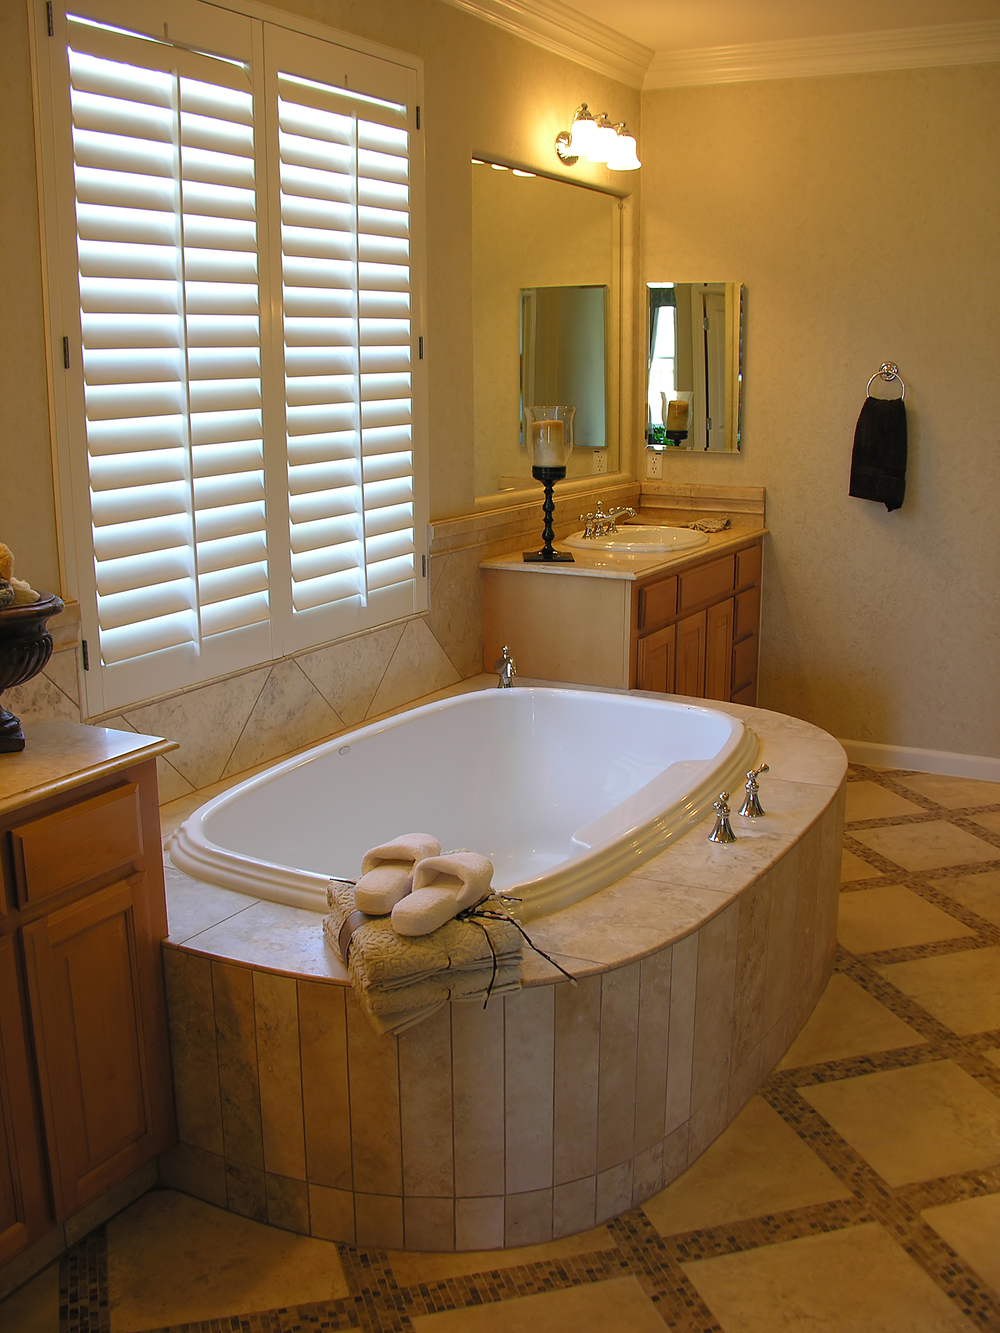 Bathroom window shutters